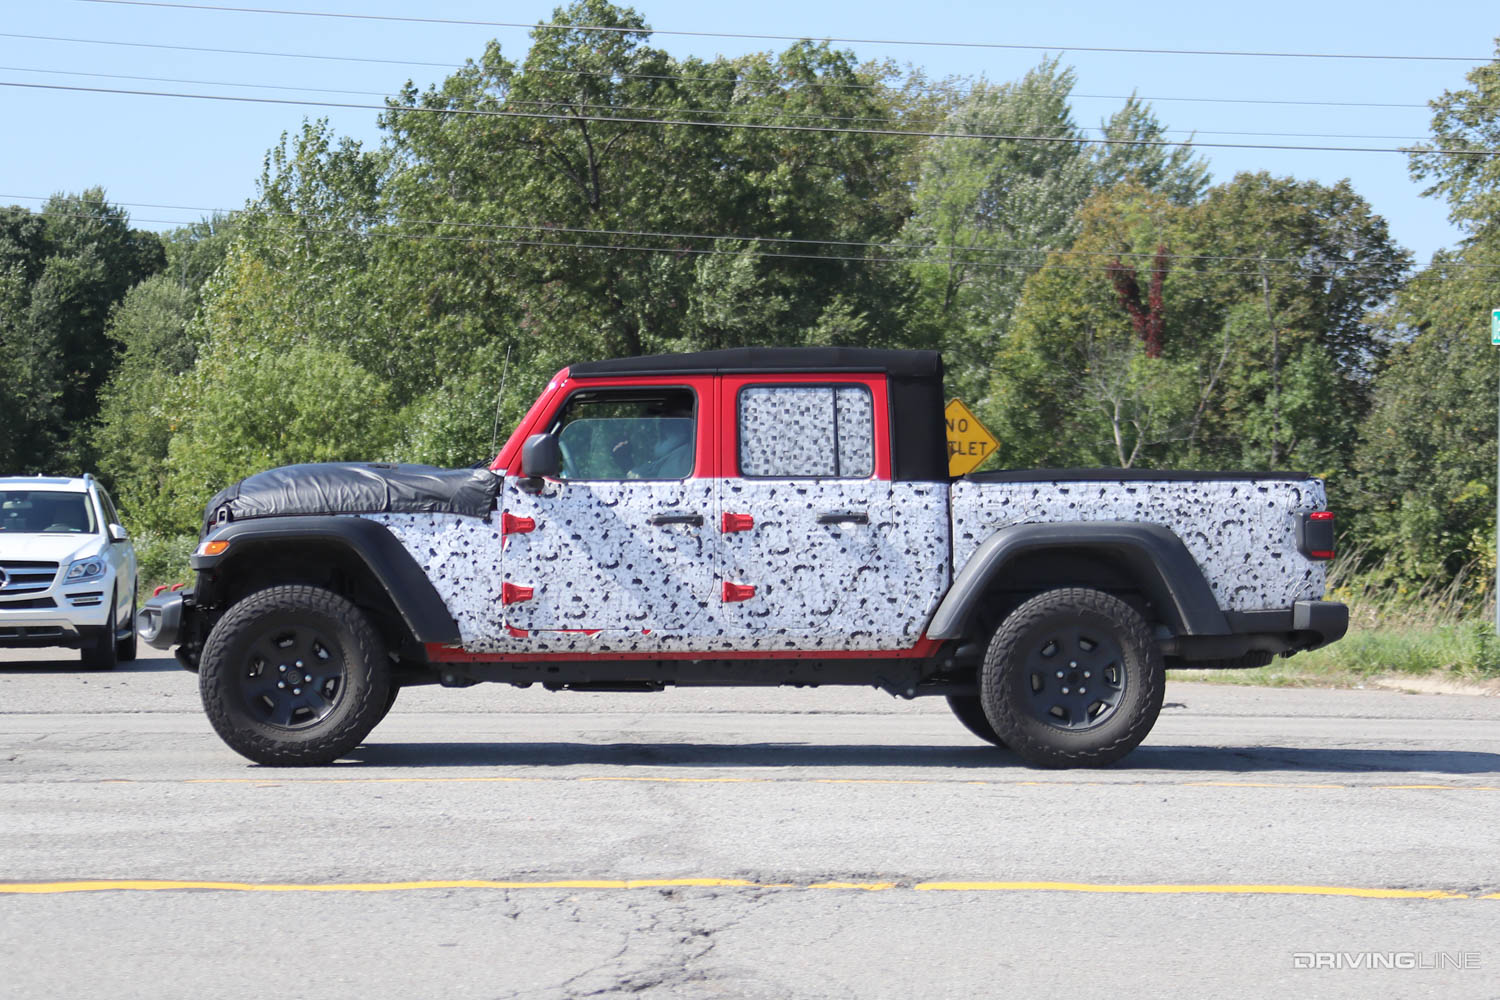 2020 jeep gladiator hercules spy photos  drivingline